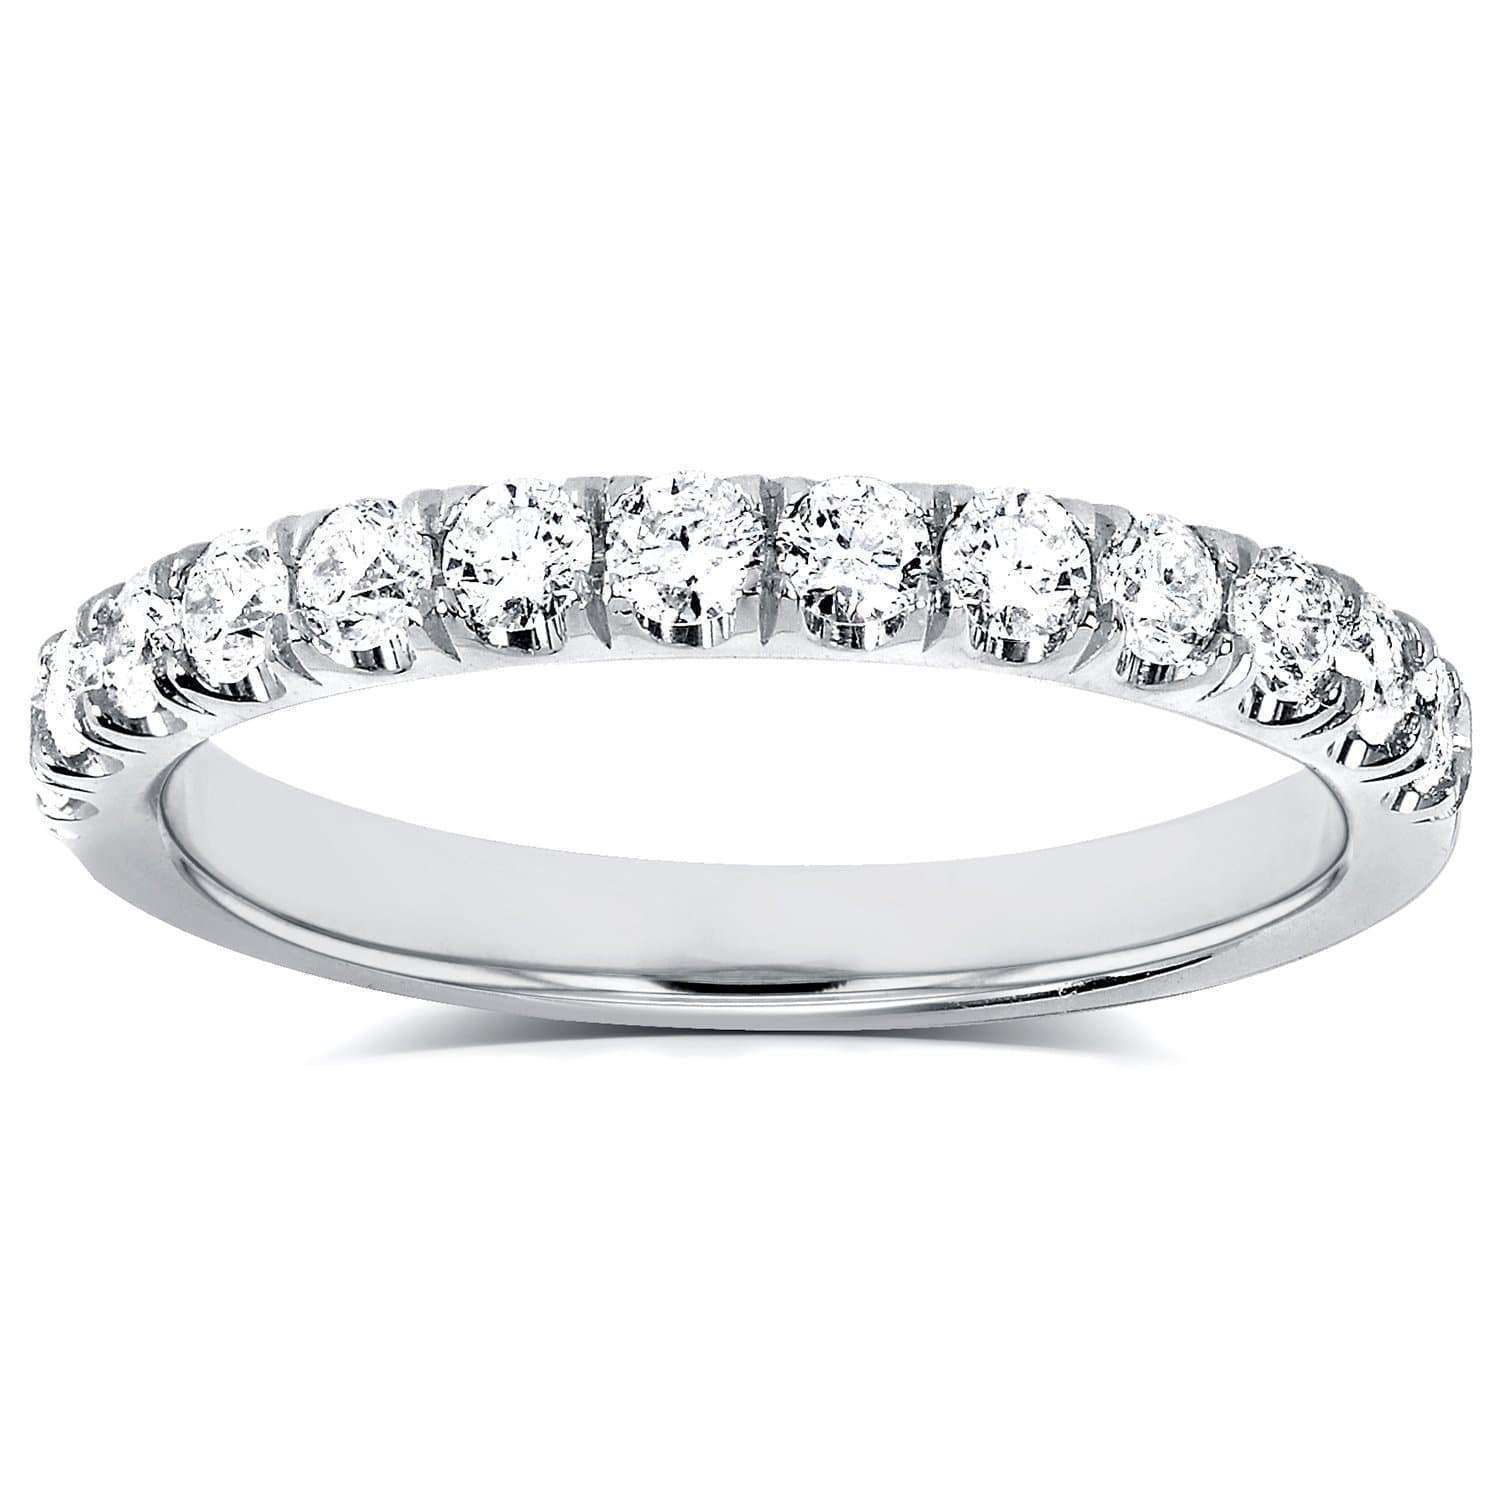 Reviews COMFORT FIT FRENCH PAVE LAB GROWN DIAMOND BAND - 4 18k Gold White Gold